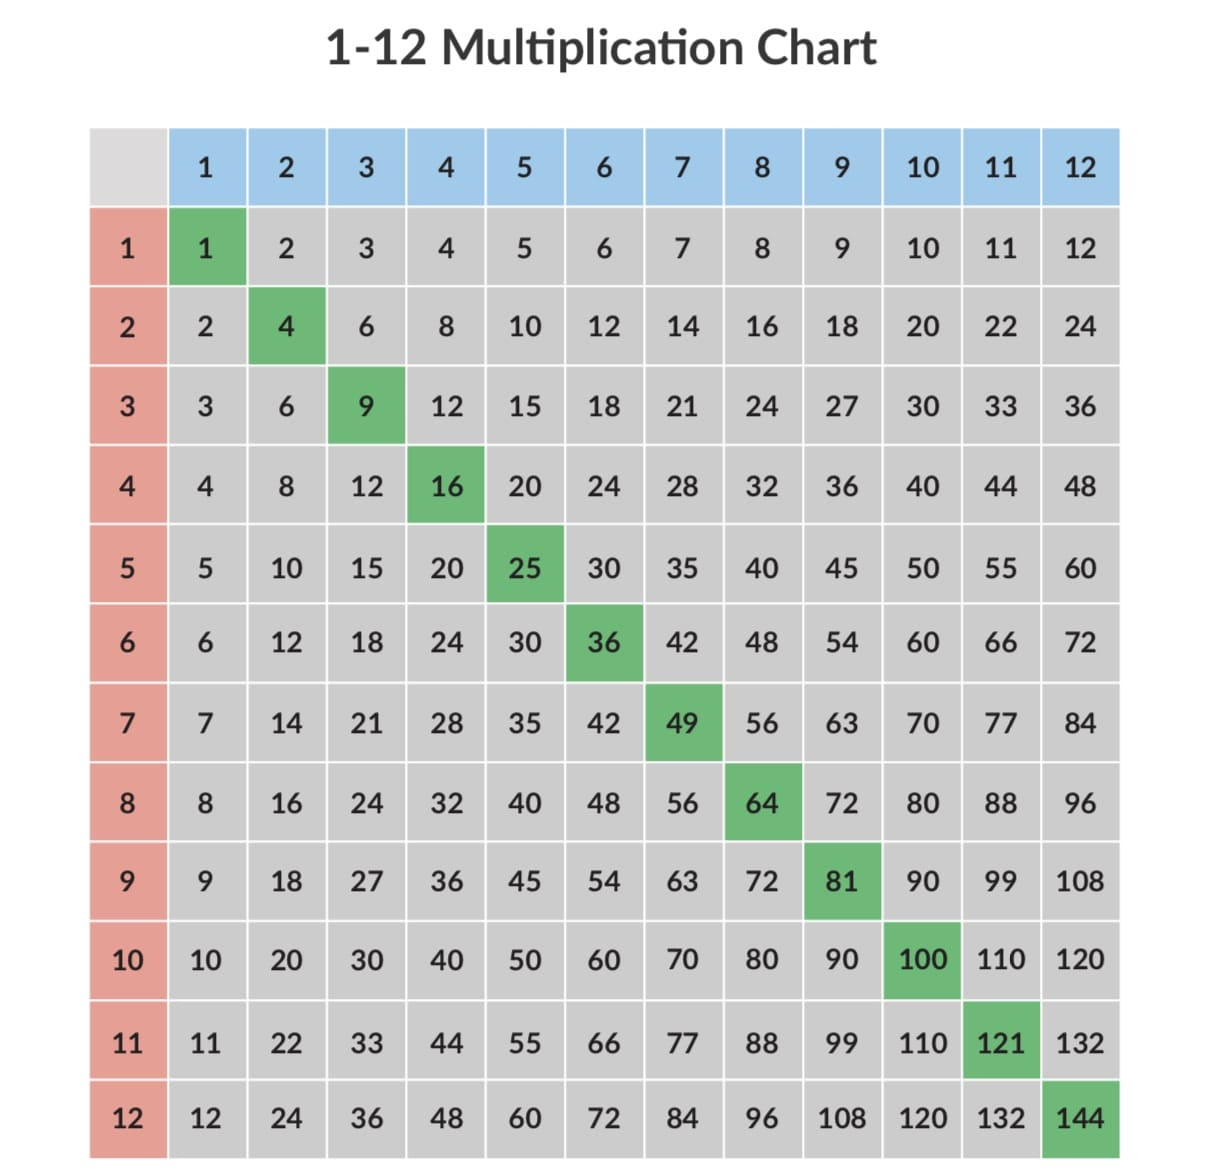 Multiplication Table Chart Printable 1 100 - Vatan.vtngcf in Printable 20X20 Multiplication Table